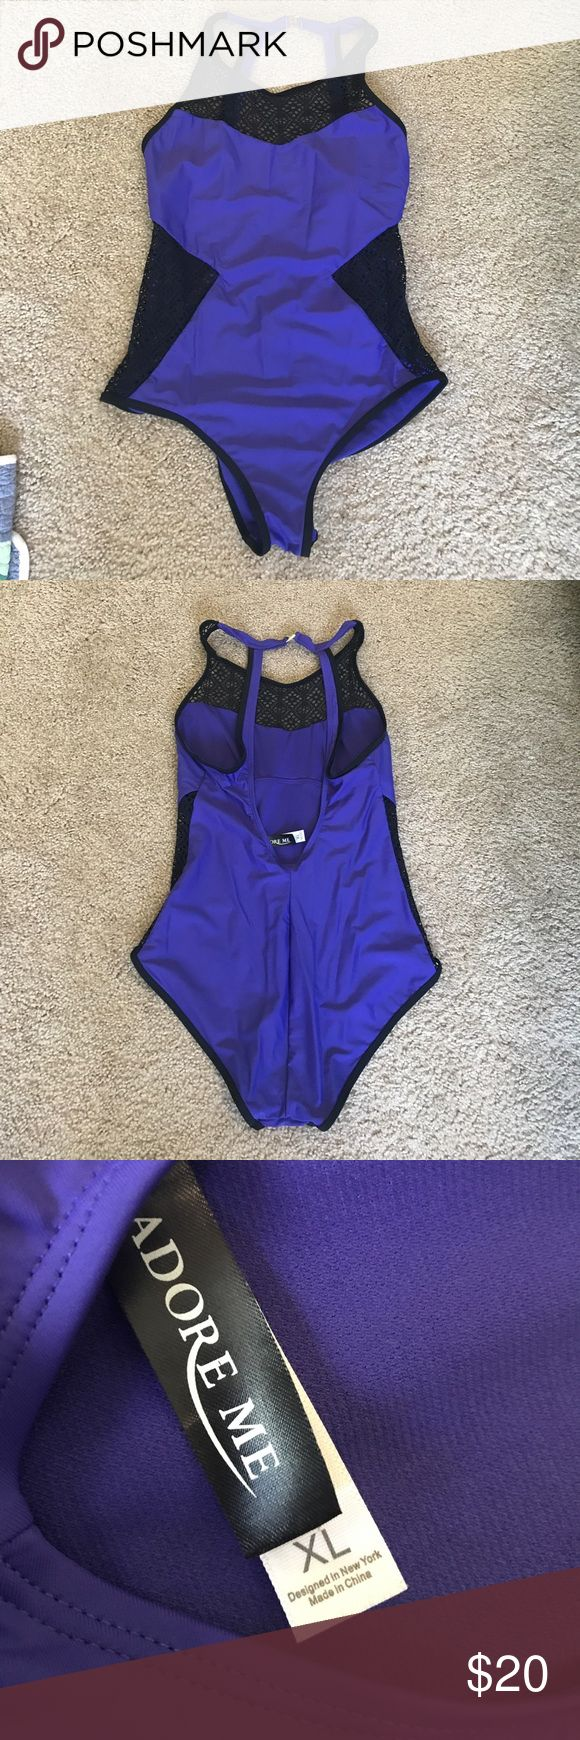 Gorgeous Purple Swimsuit with Mesh Panels Never worn swimsuit that was purchased as part of my monthly subscription but ended up being too small for my long torso. The mesh detail makes for a really sexy swimsuit! 💜 Adore Me Swim One Pieces